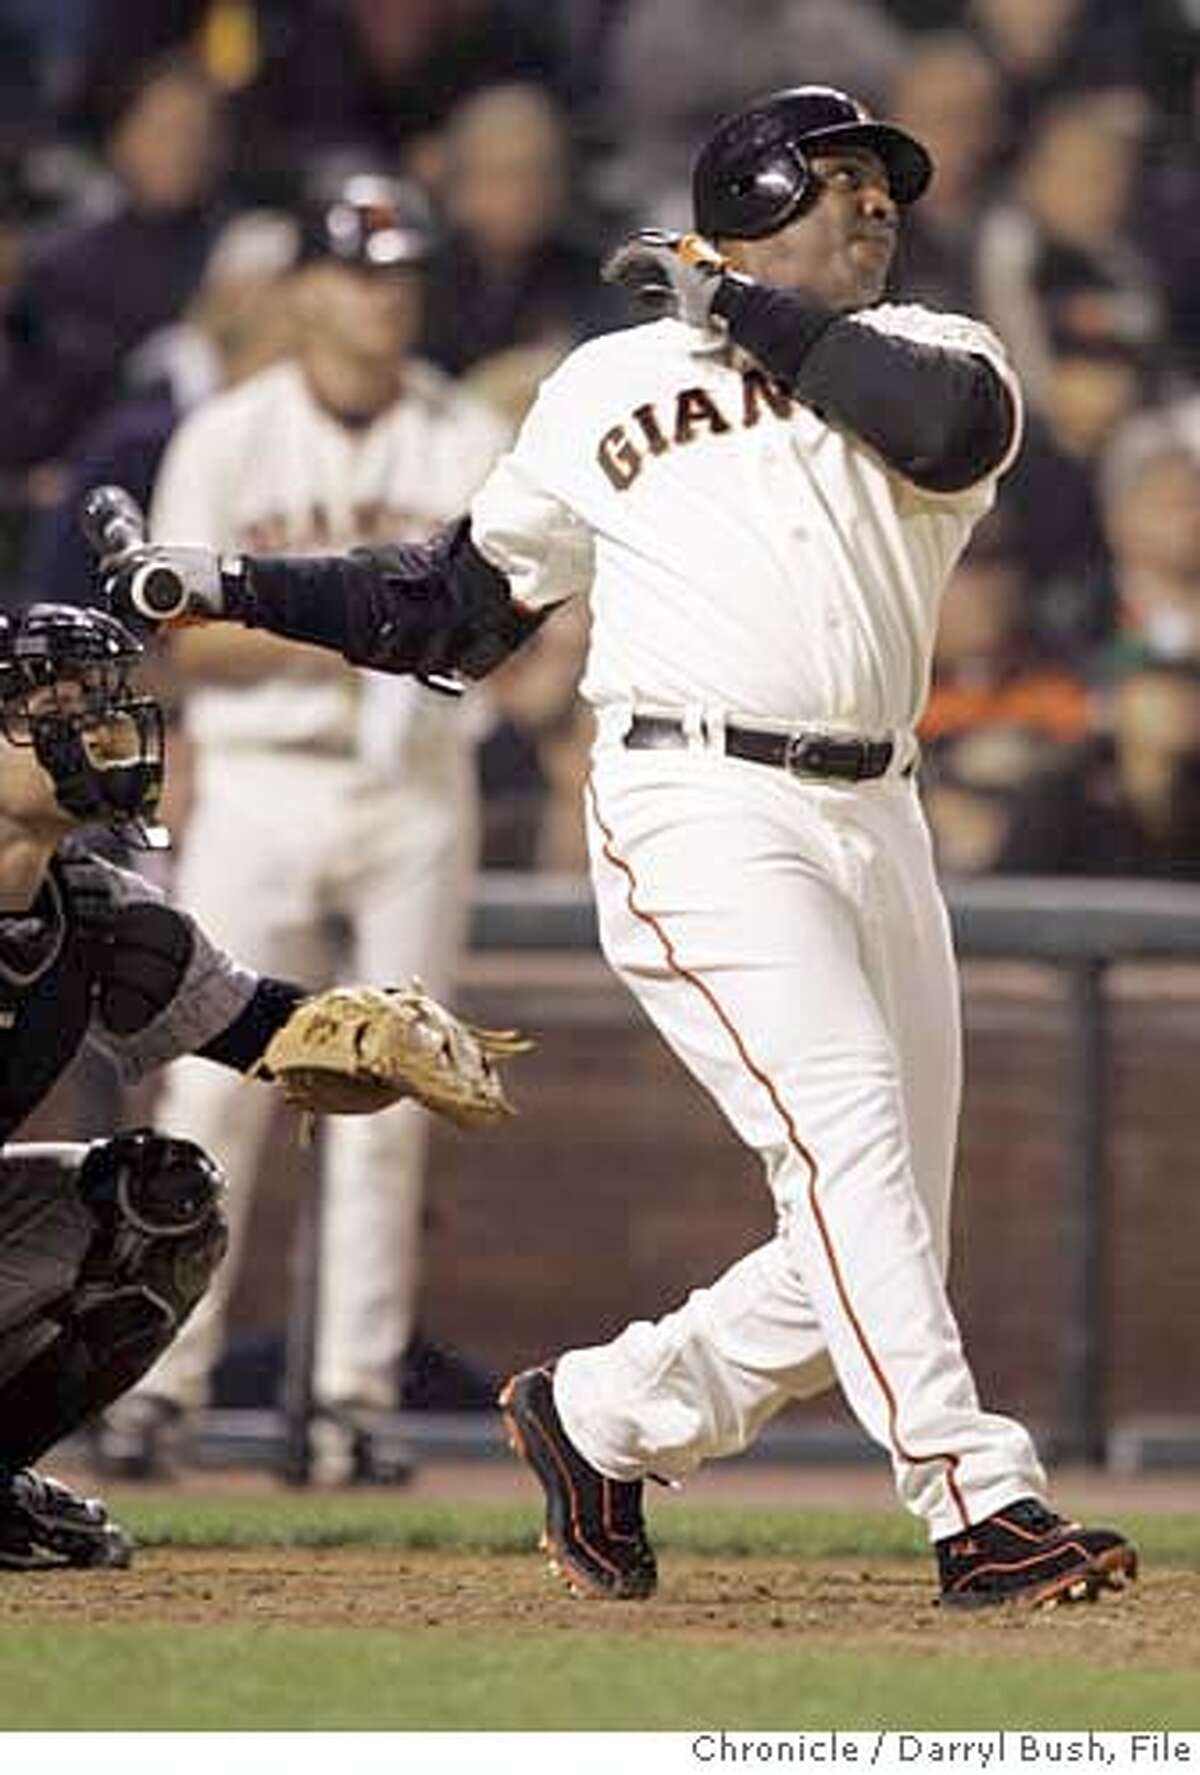 giants_0008_db.JPG San Francisco Giants Barry Bonds hits his 732nd career home run in the 9th inning but the solo shot wasn't enough as the Giants lost 9-8 vs. Colorado Rockies at AT&T Park in San Francisco, CA on Wednesday, September 13, 2006. 9/13/06 Darryl Bush / The Chronicle ** (cq) MANDATORY CREDIT FOR PHOTOG AND SF CHRONICLE/ -MAGS OUT